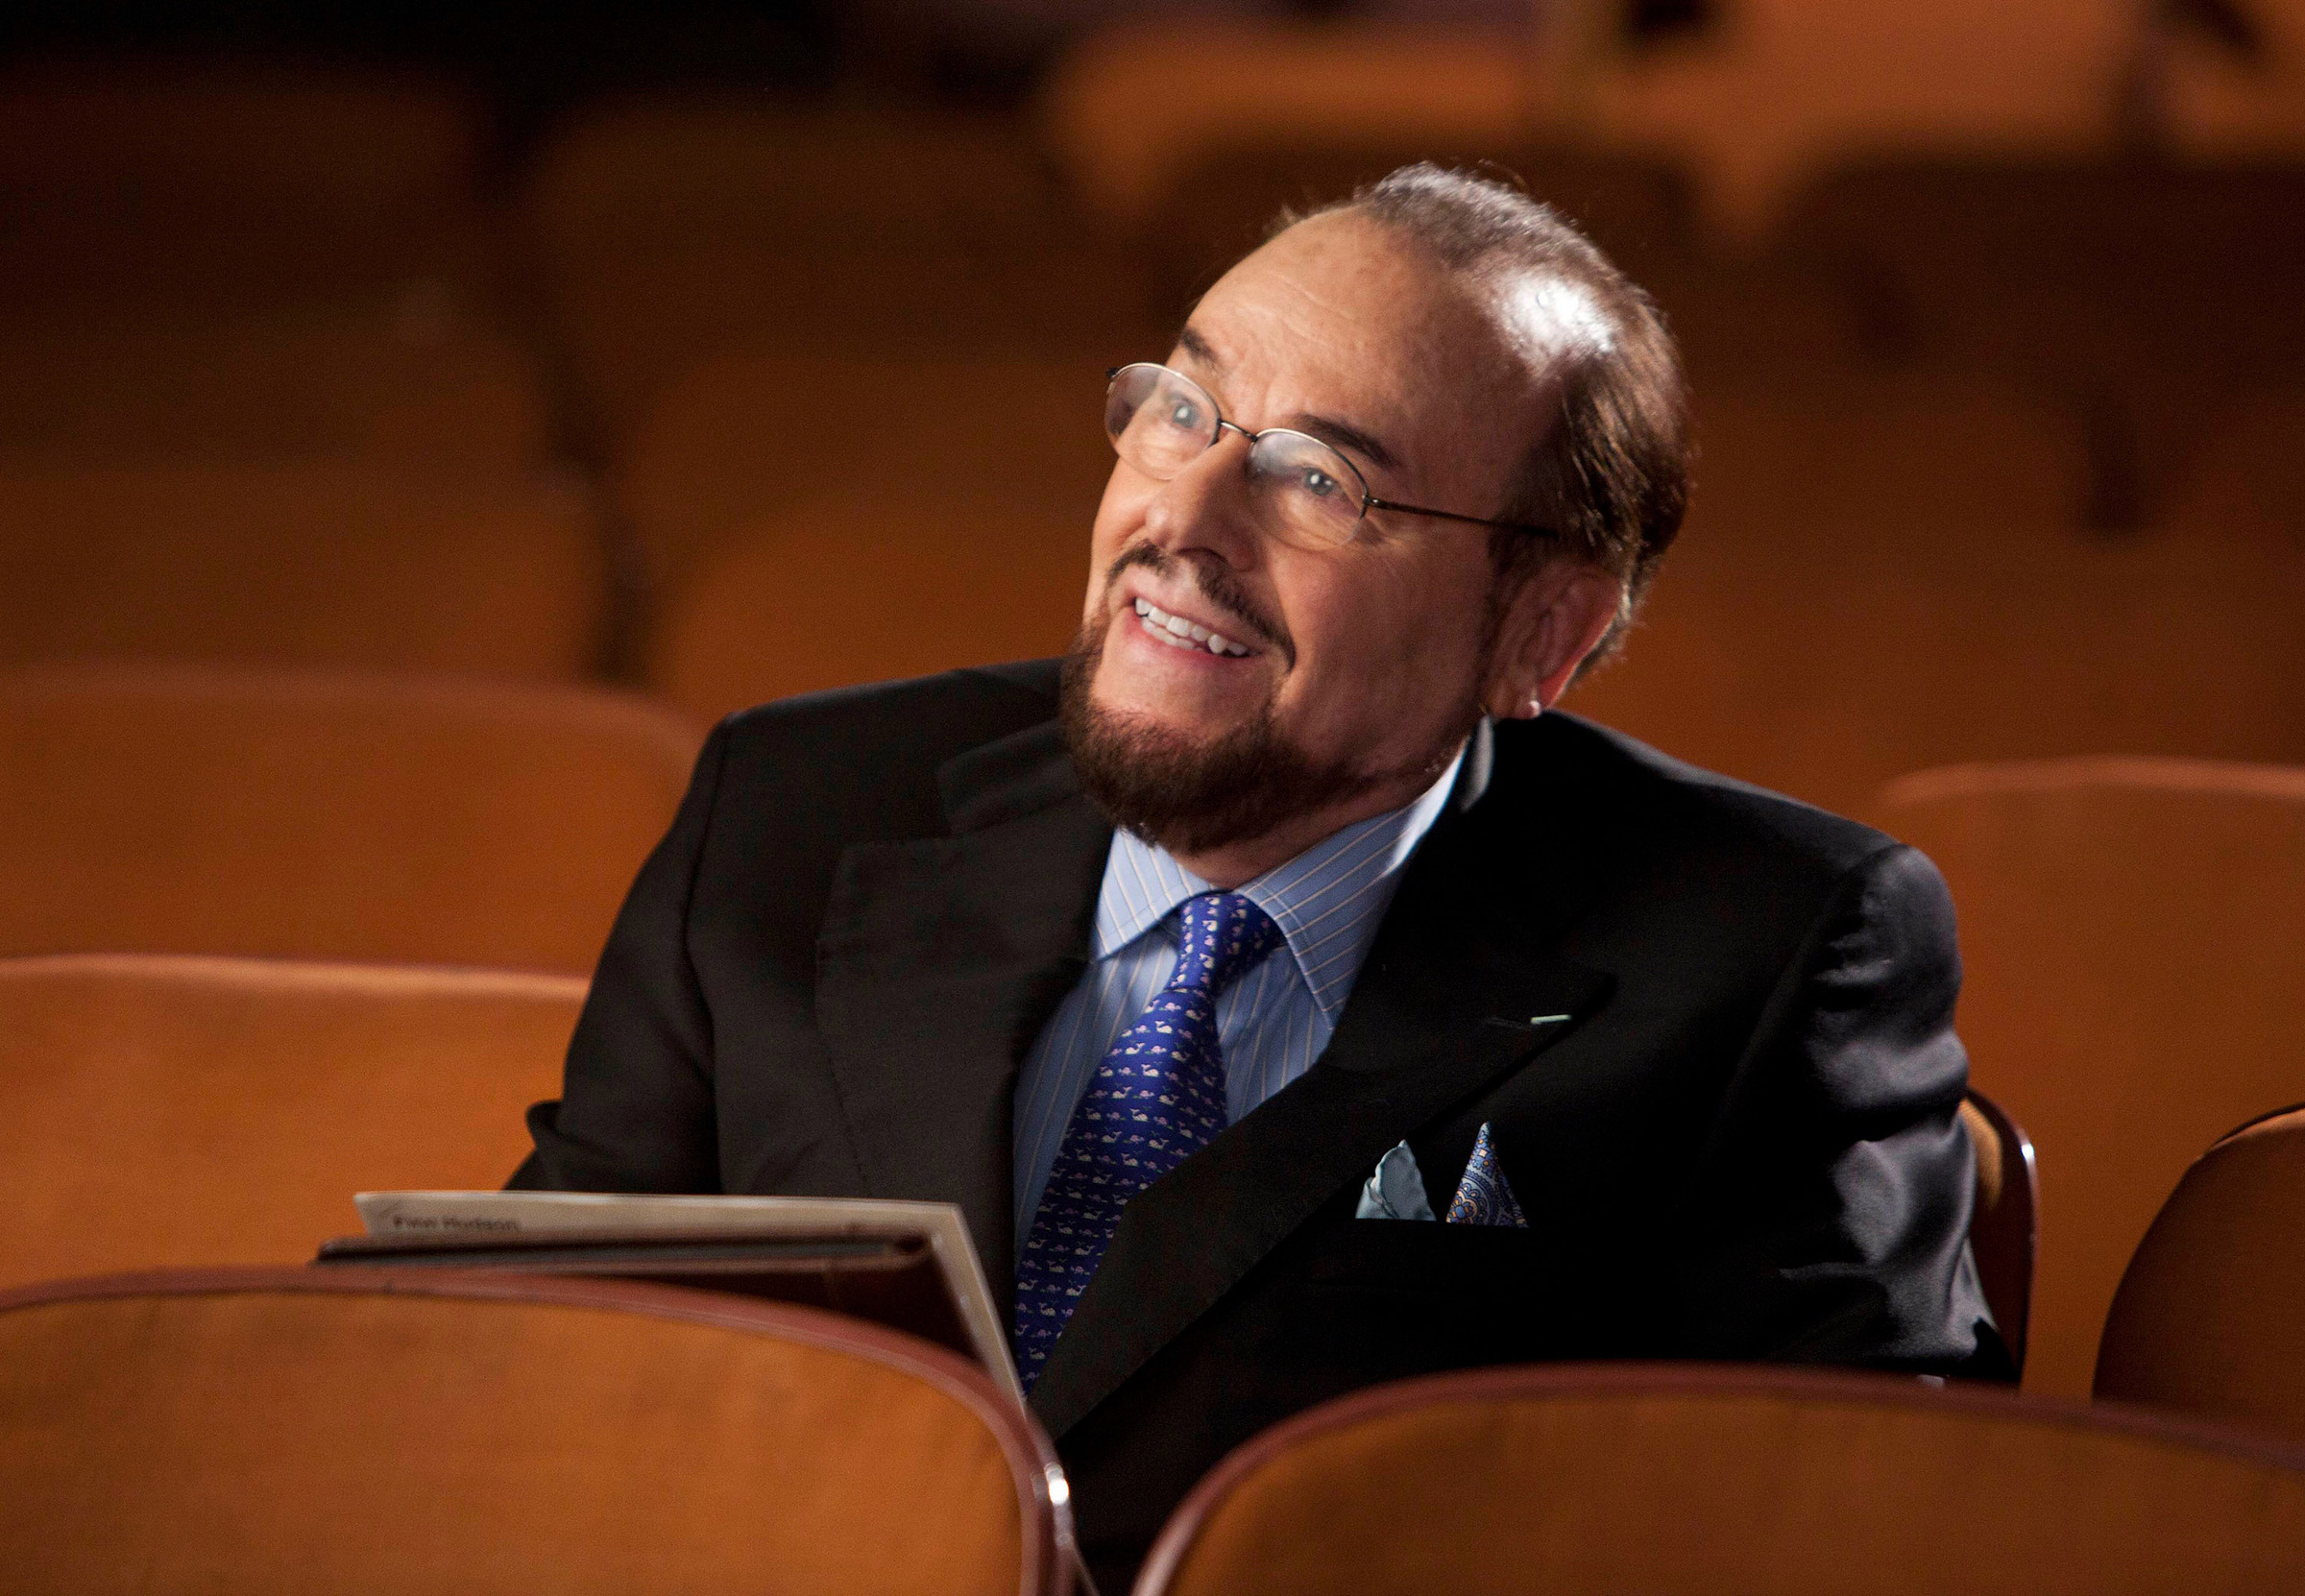 James Lipton guest-stars as himself in the  Goodbye  season finale episode of GLEE airing May 22, 2012